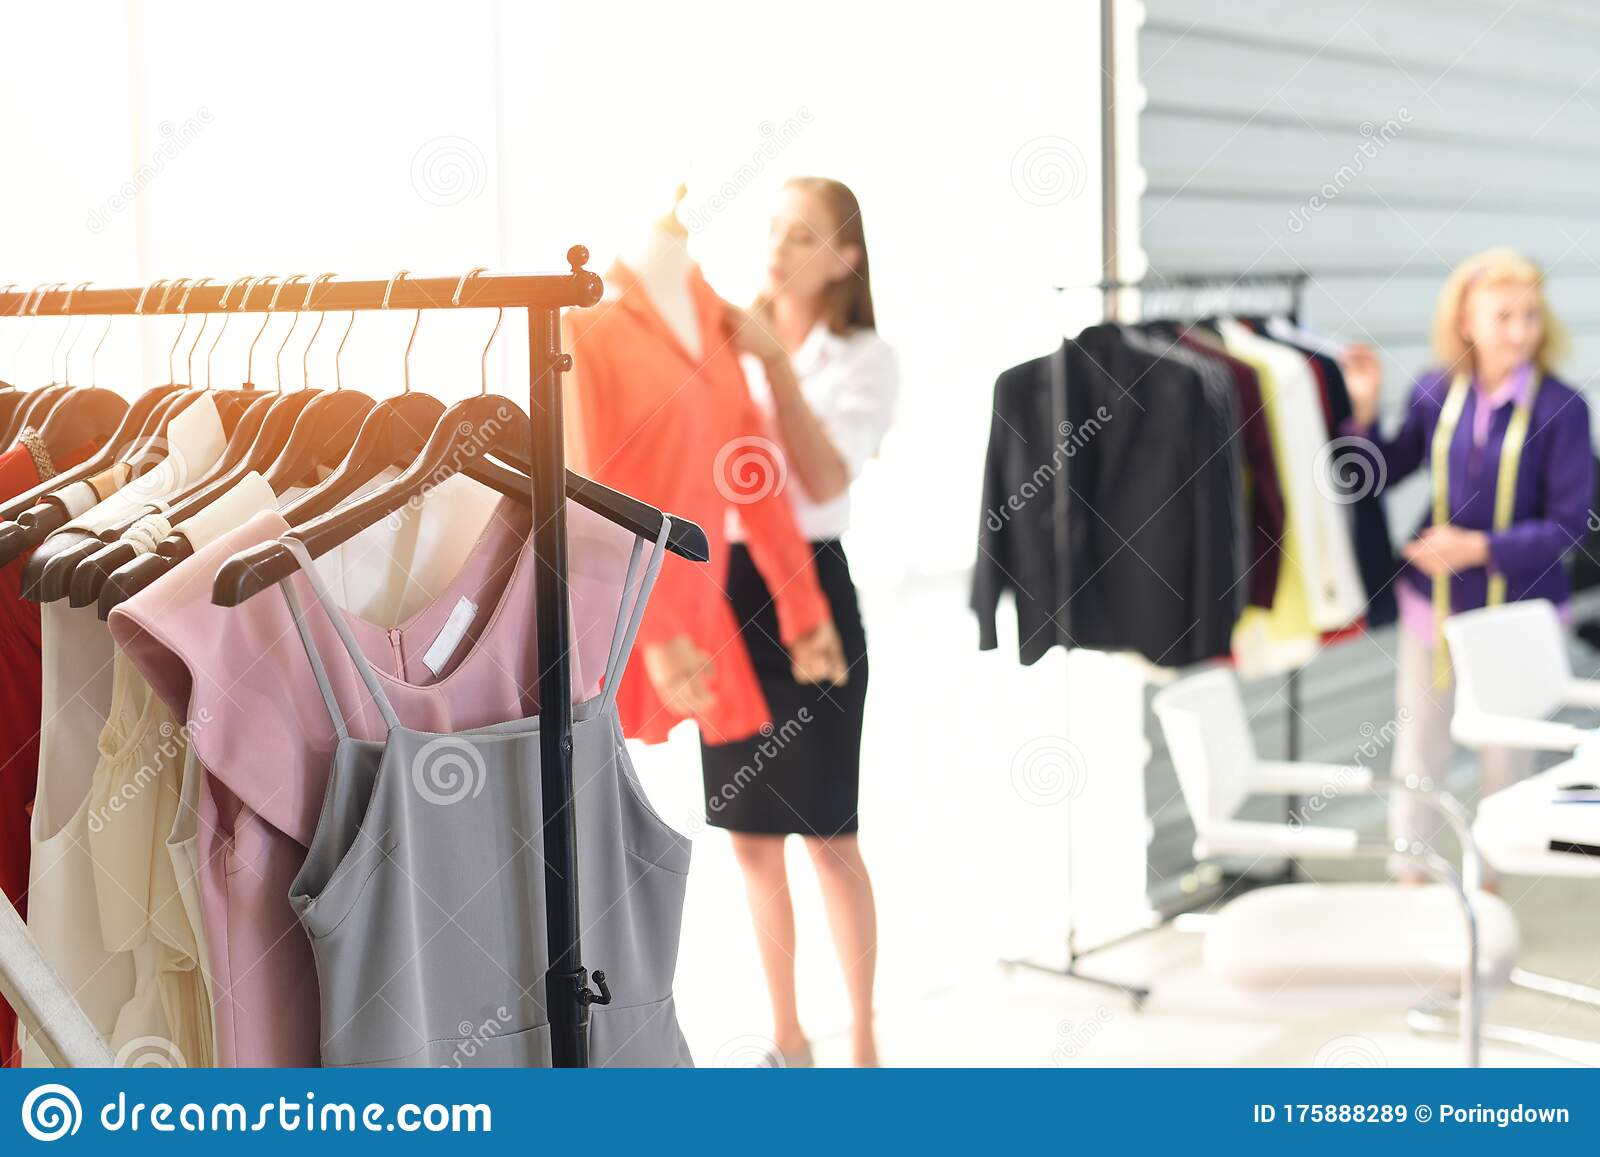 Fashion Designer Studio Measuring Textile Material Scissors Cutting Fabric By Woman Designer Stylish Showroom Hanging Clothes Stock Image Image Of Dress Couture 175888289